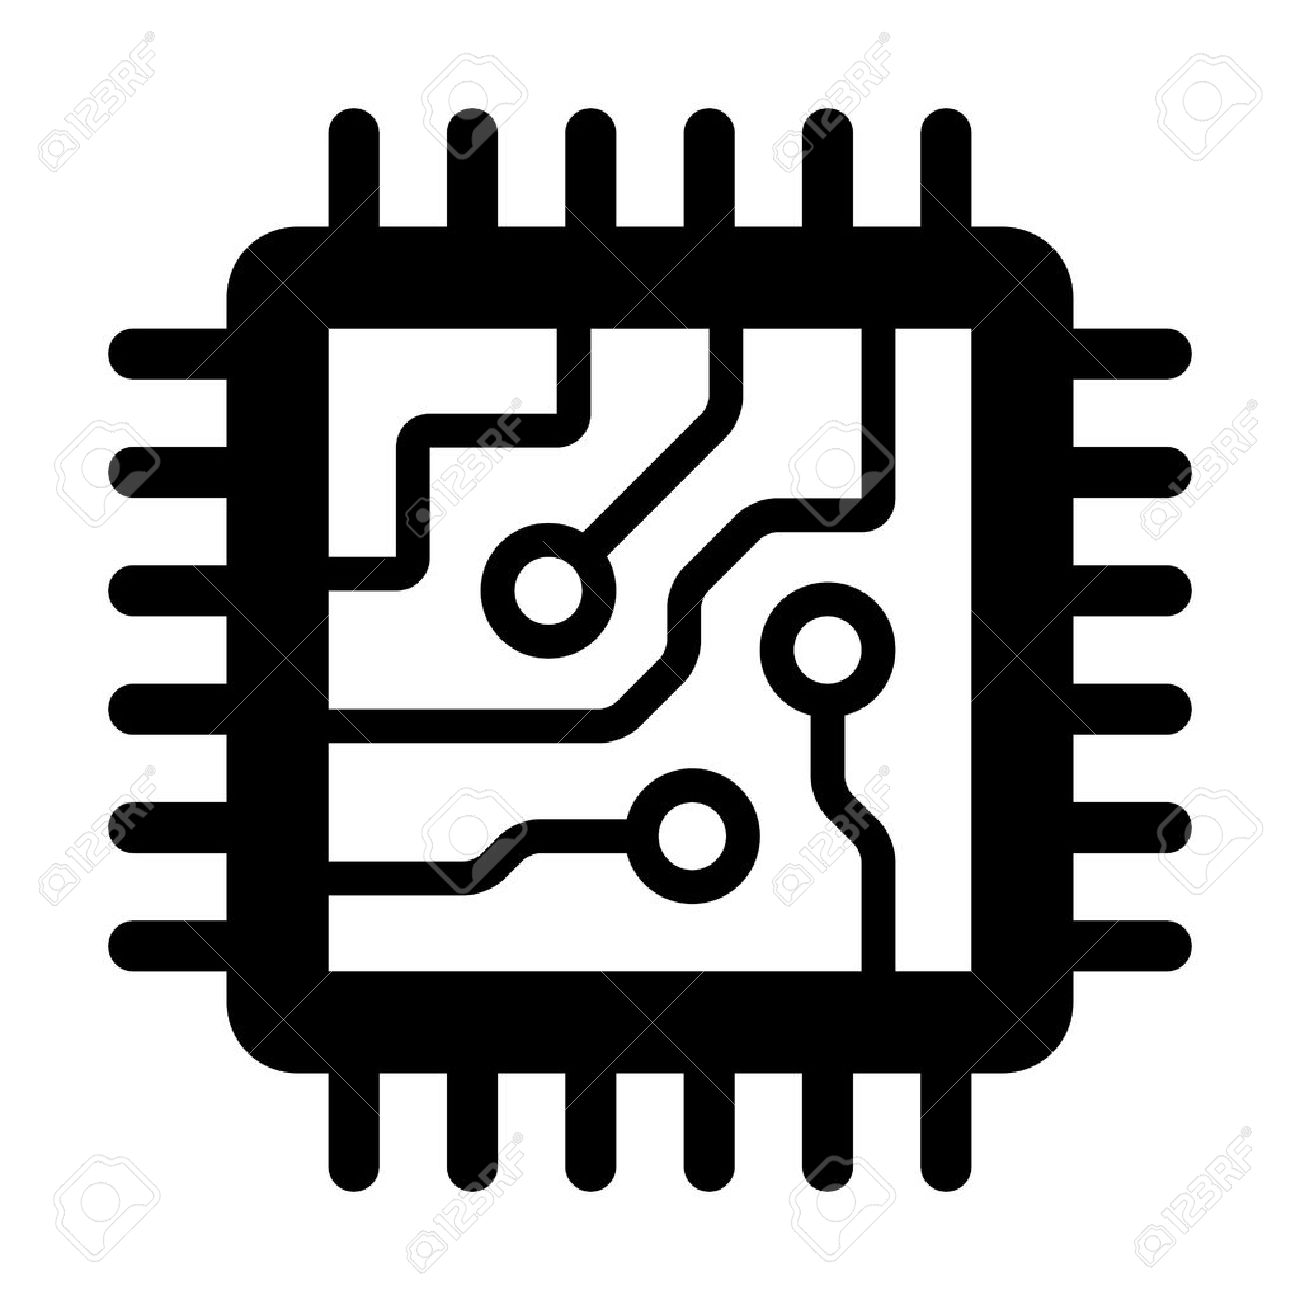 Computer Chip Circuit Board Flat Icon For Apps And Websites Royalty ...